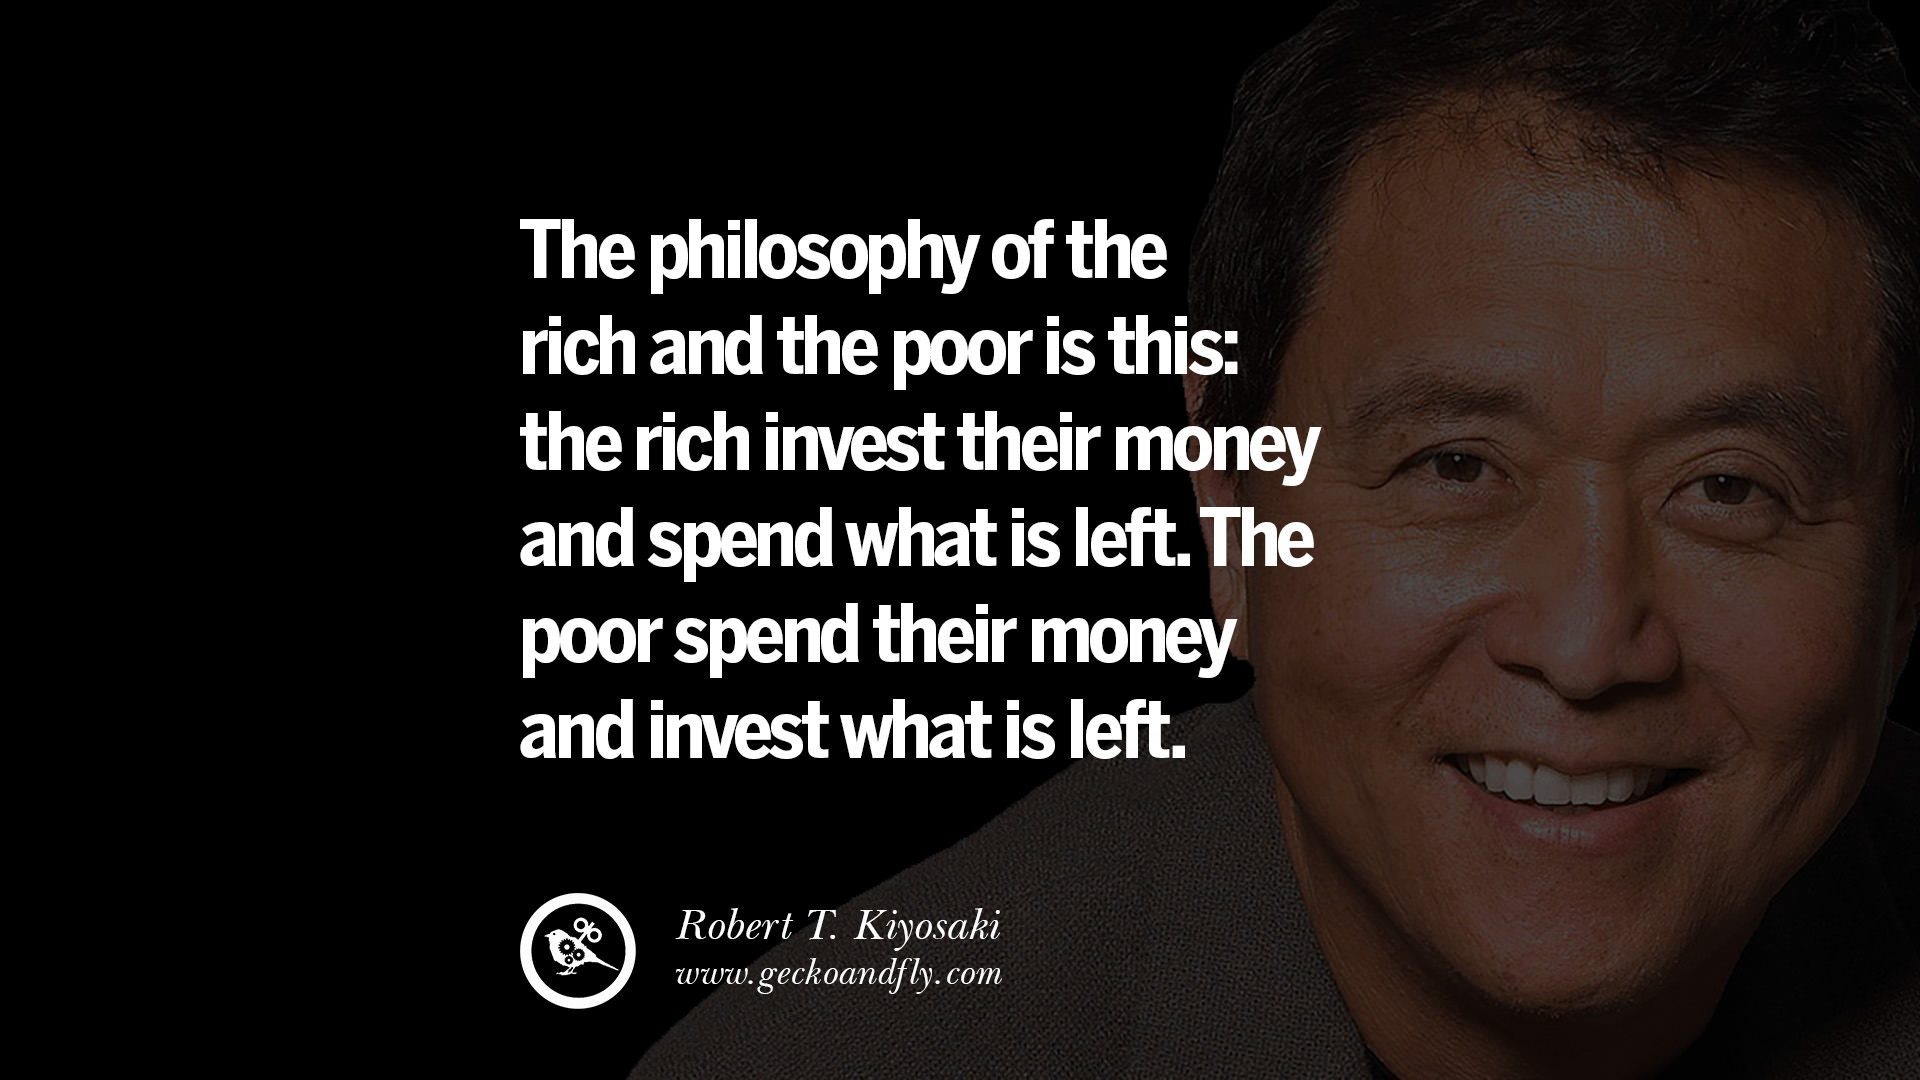 how the rich benefit from the poor If one thinks the only way to help the poor is by taking money from the rich and giving it to the poor, then it is very hard to build a pro-poor policy that is also pro-growth.